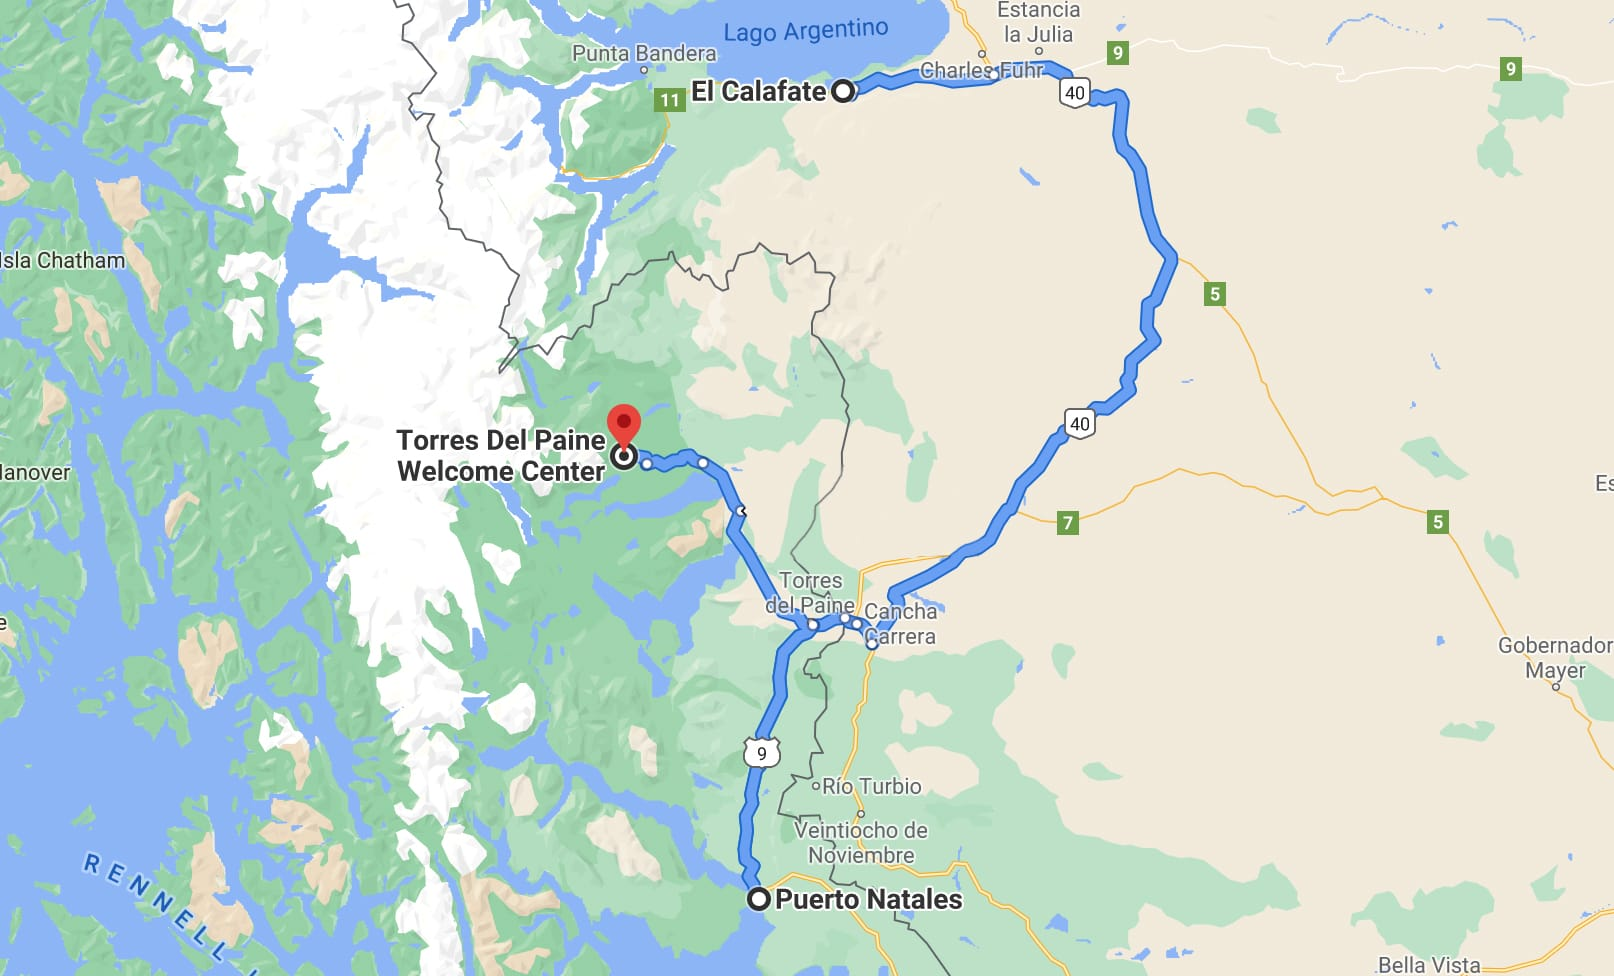 Getting from El Calafate to Torres del Paine route